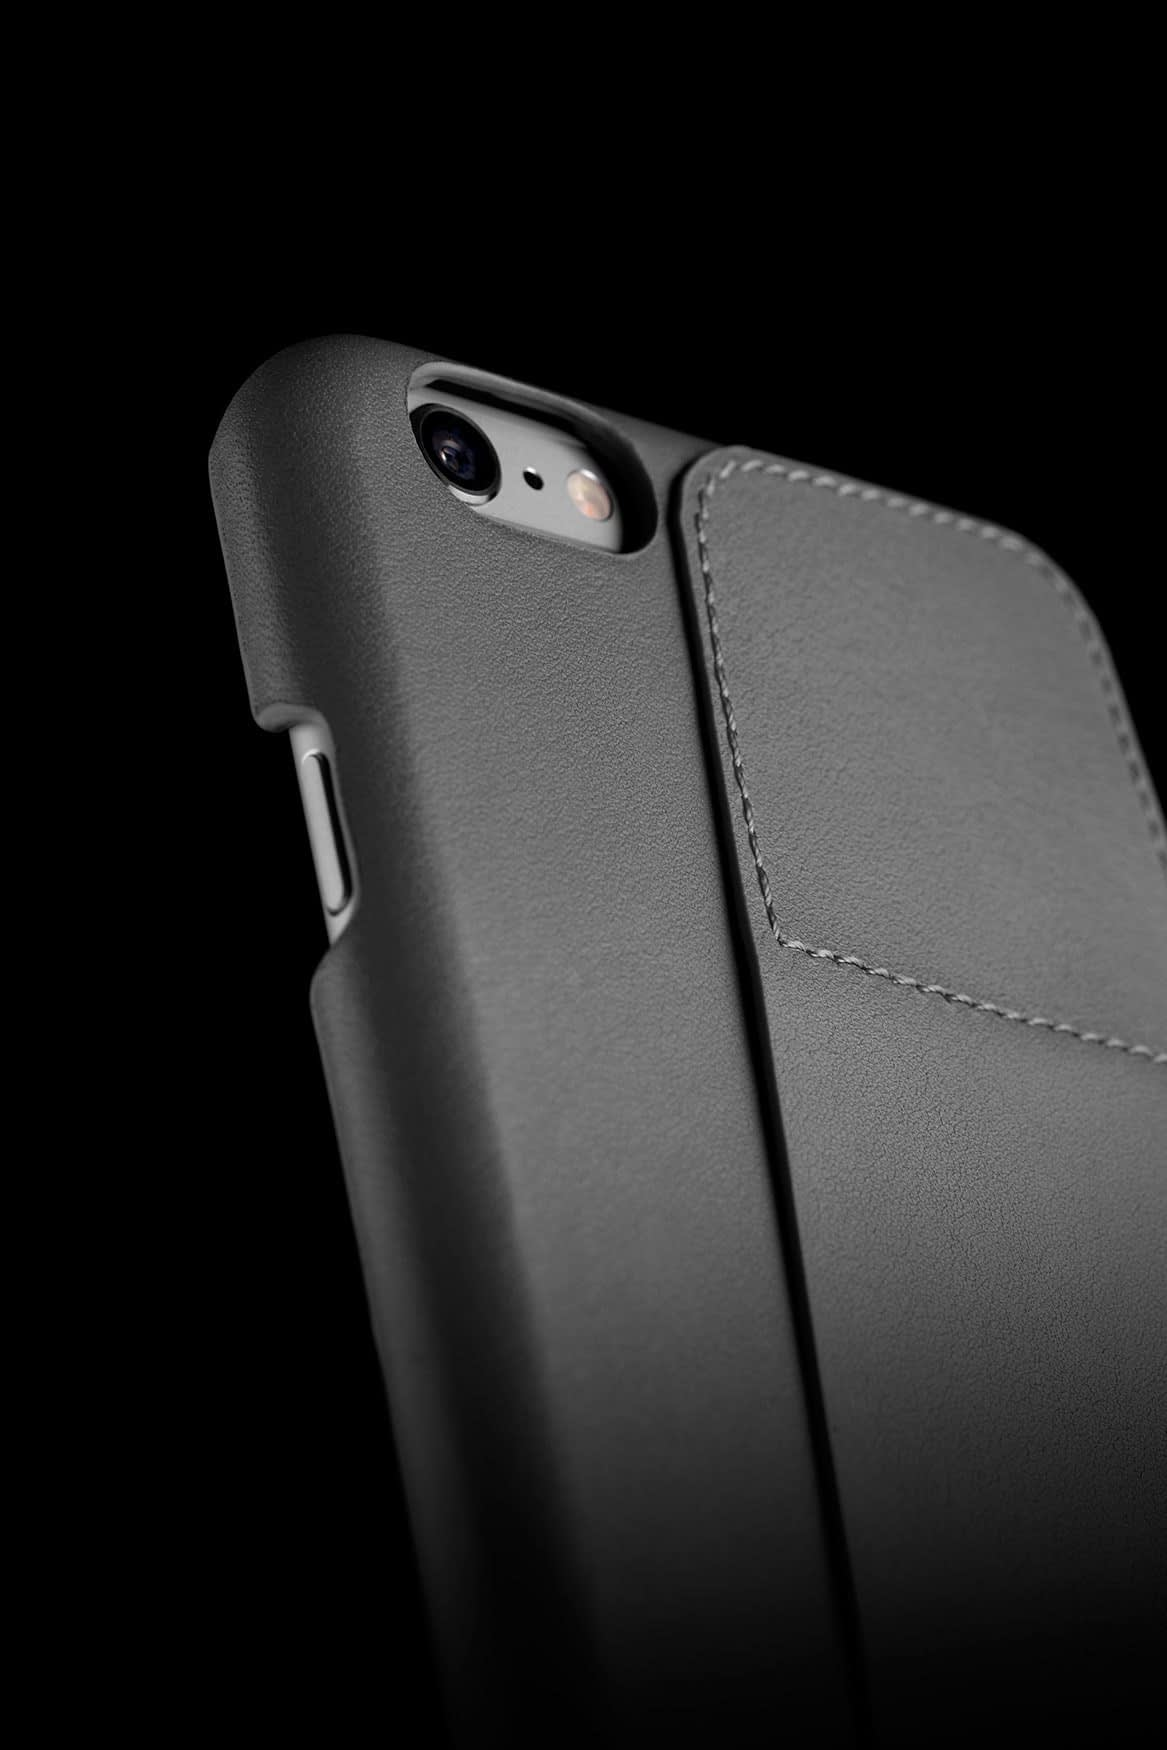 Leather Wallet Case 80° for iPhone 6 Plus Gray Lifestyle 002